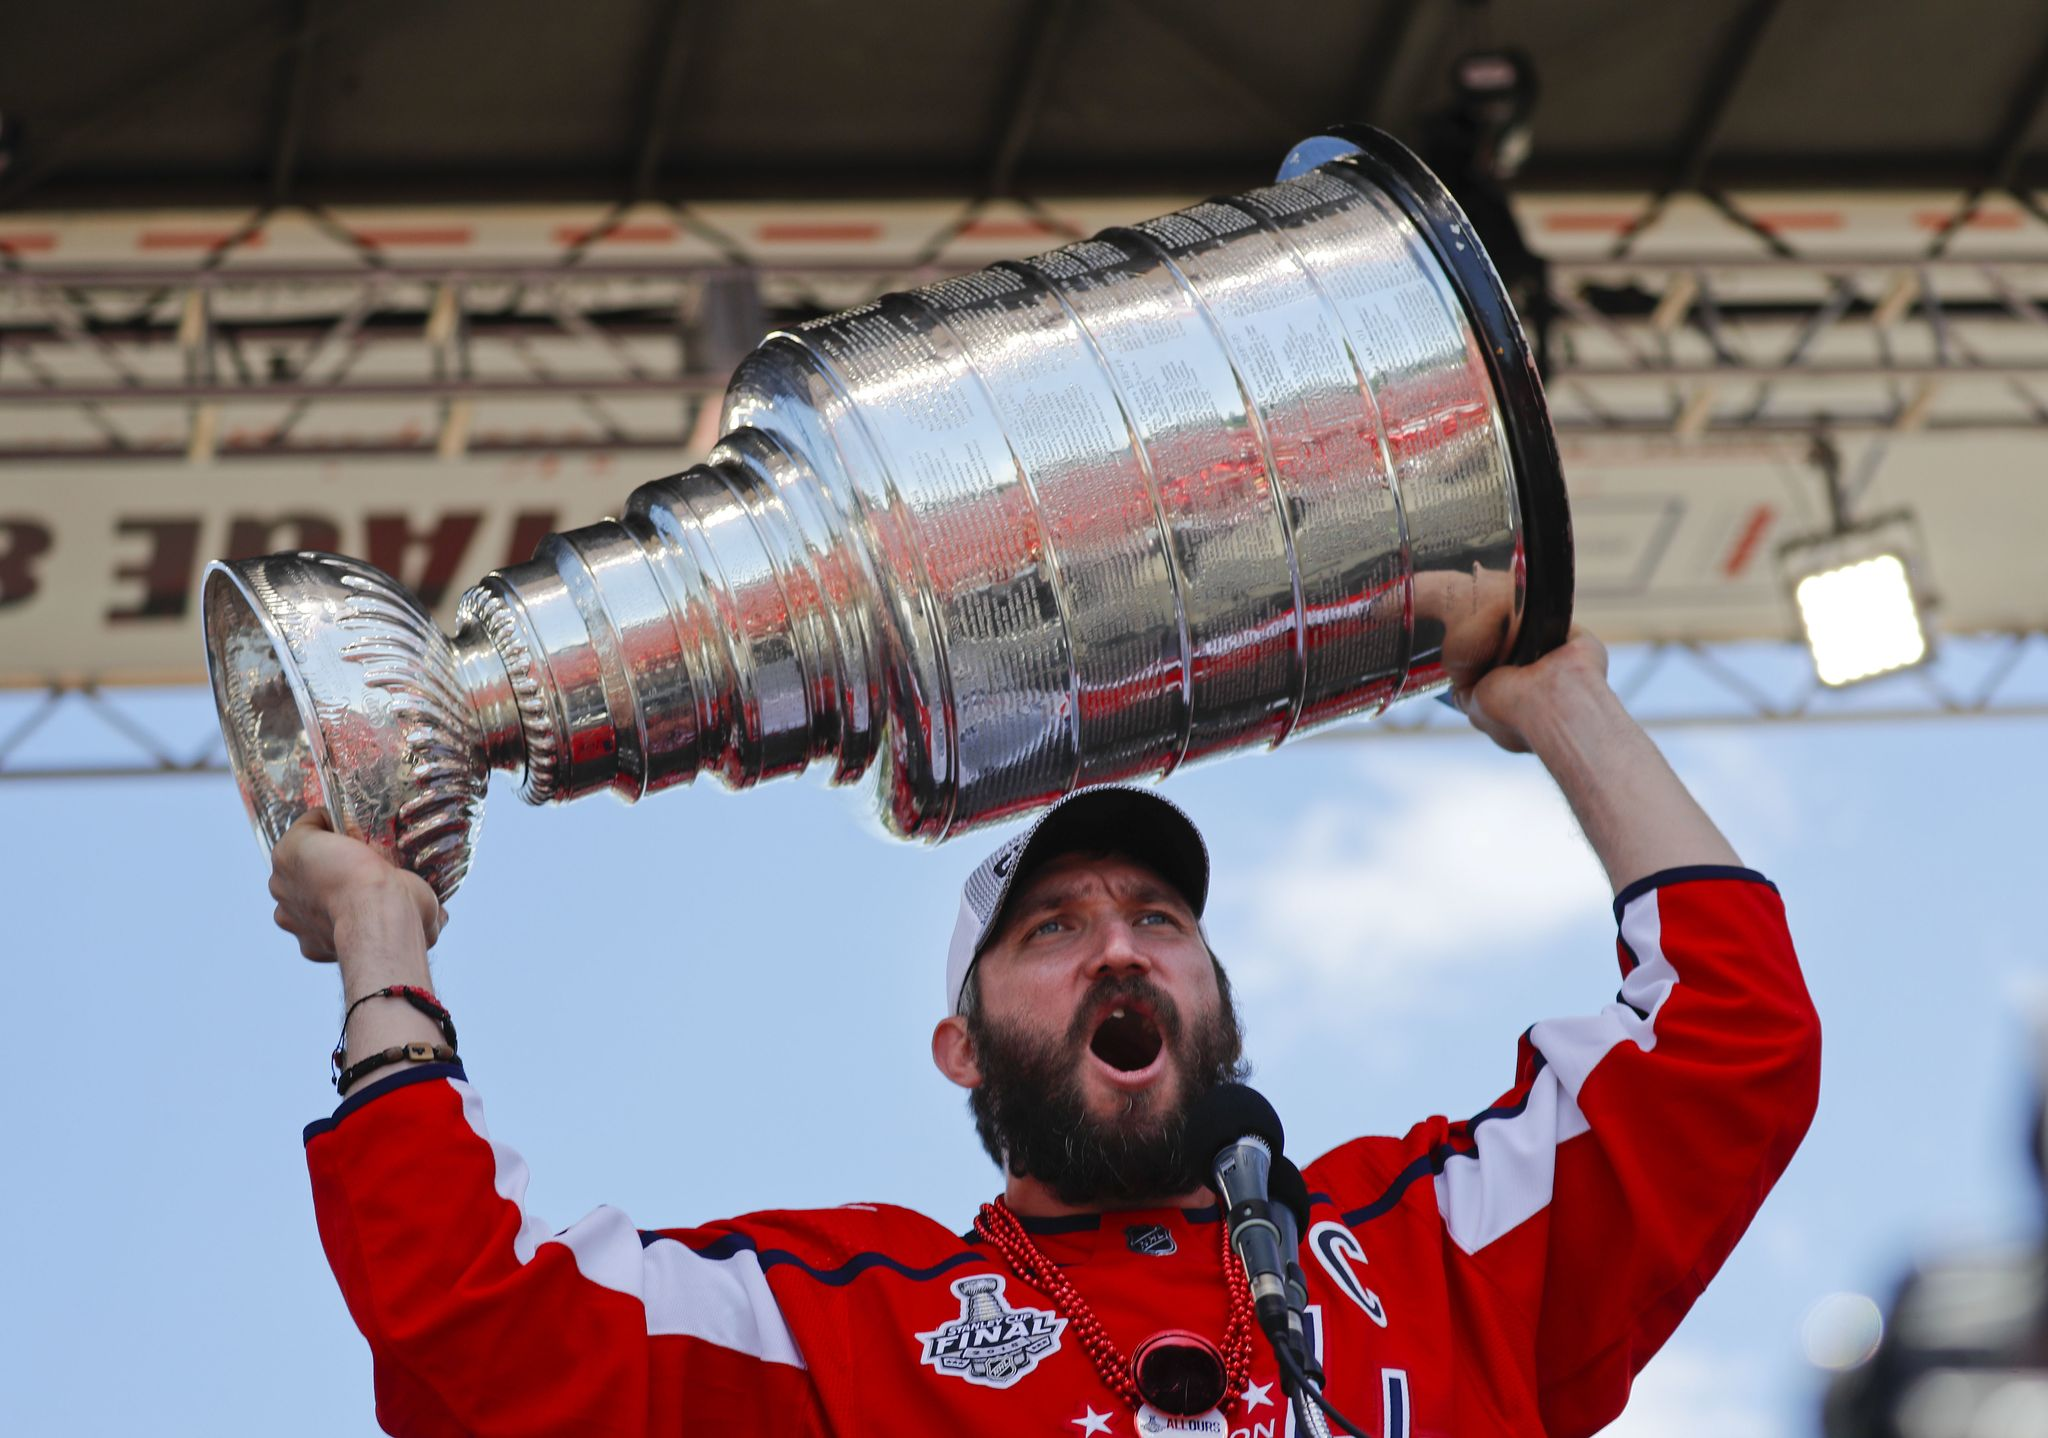 Capitals_stanley_cup_celebration_hockey_73028.jpg-4a276_s2048x1438